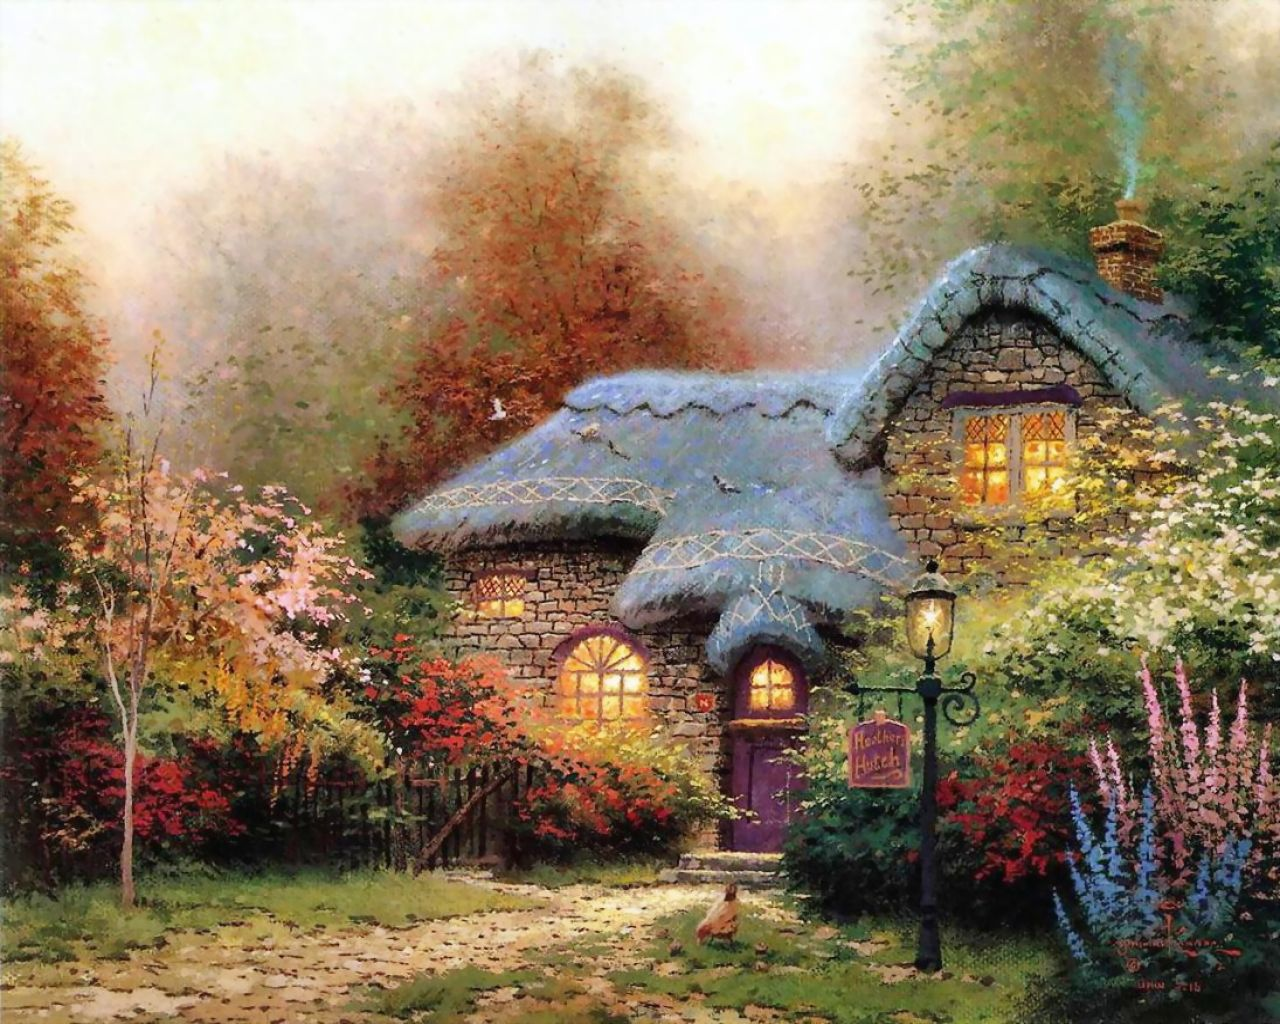 Thomas Kinkade - a stone country house